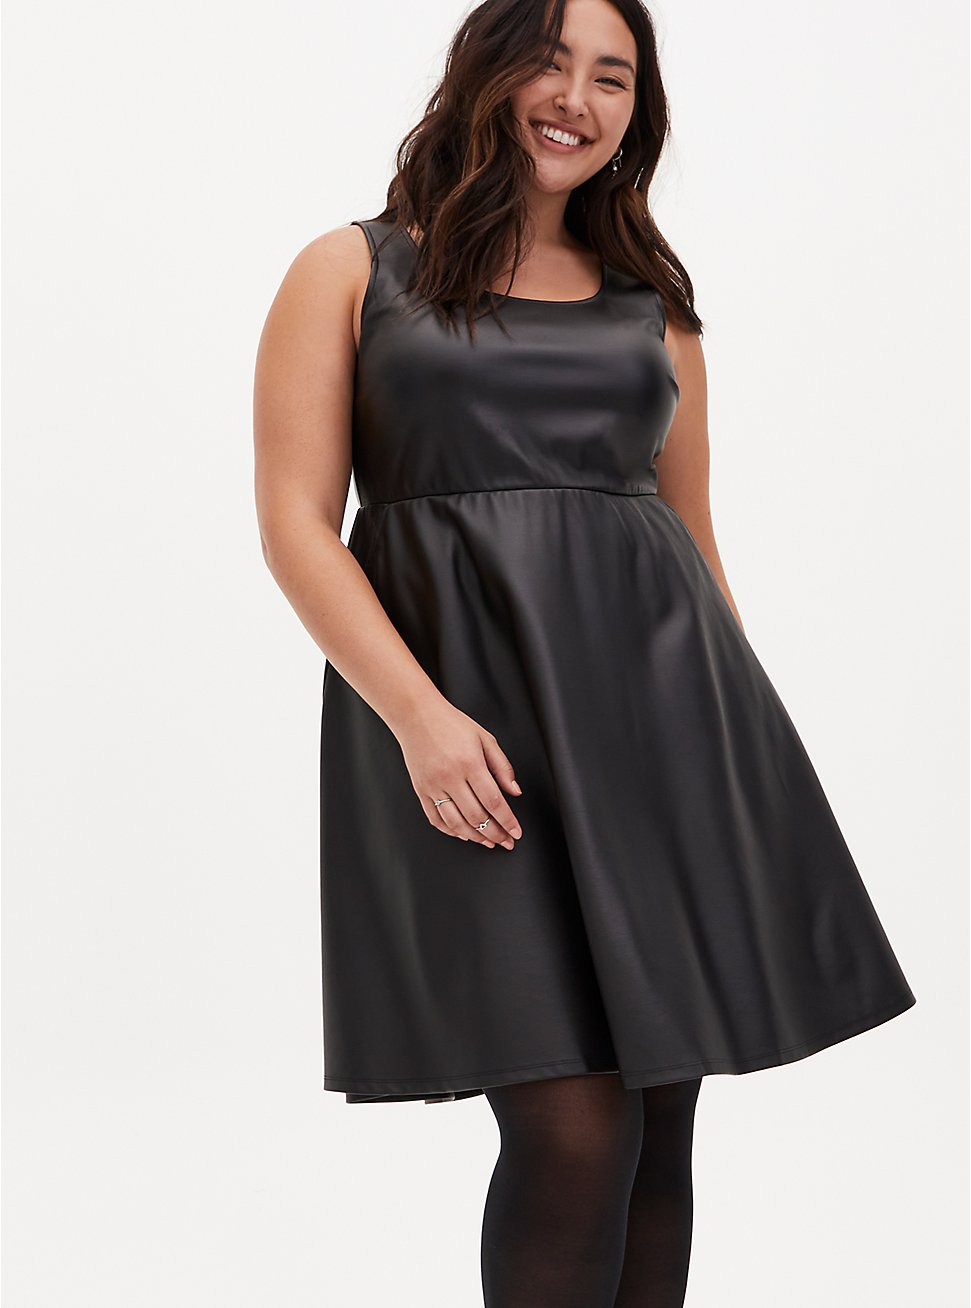 Black Faux Leather Sleeveless Skater Dress